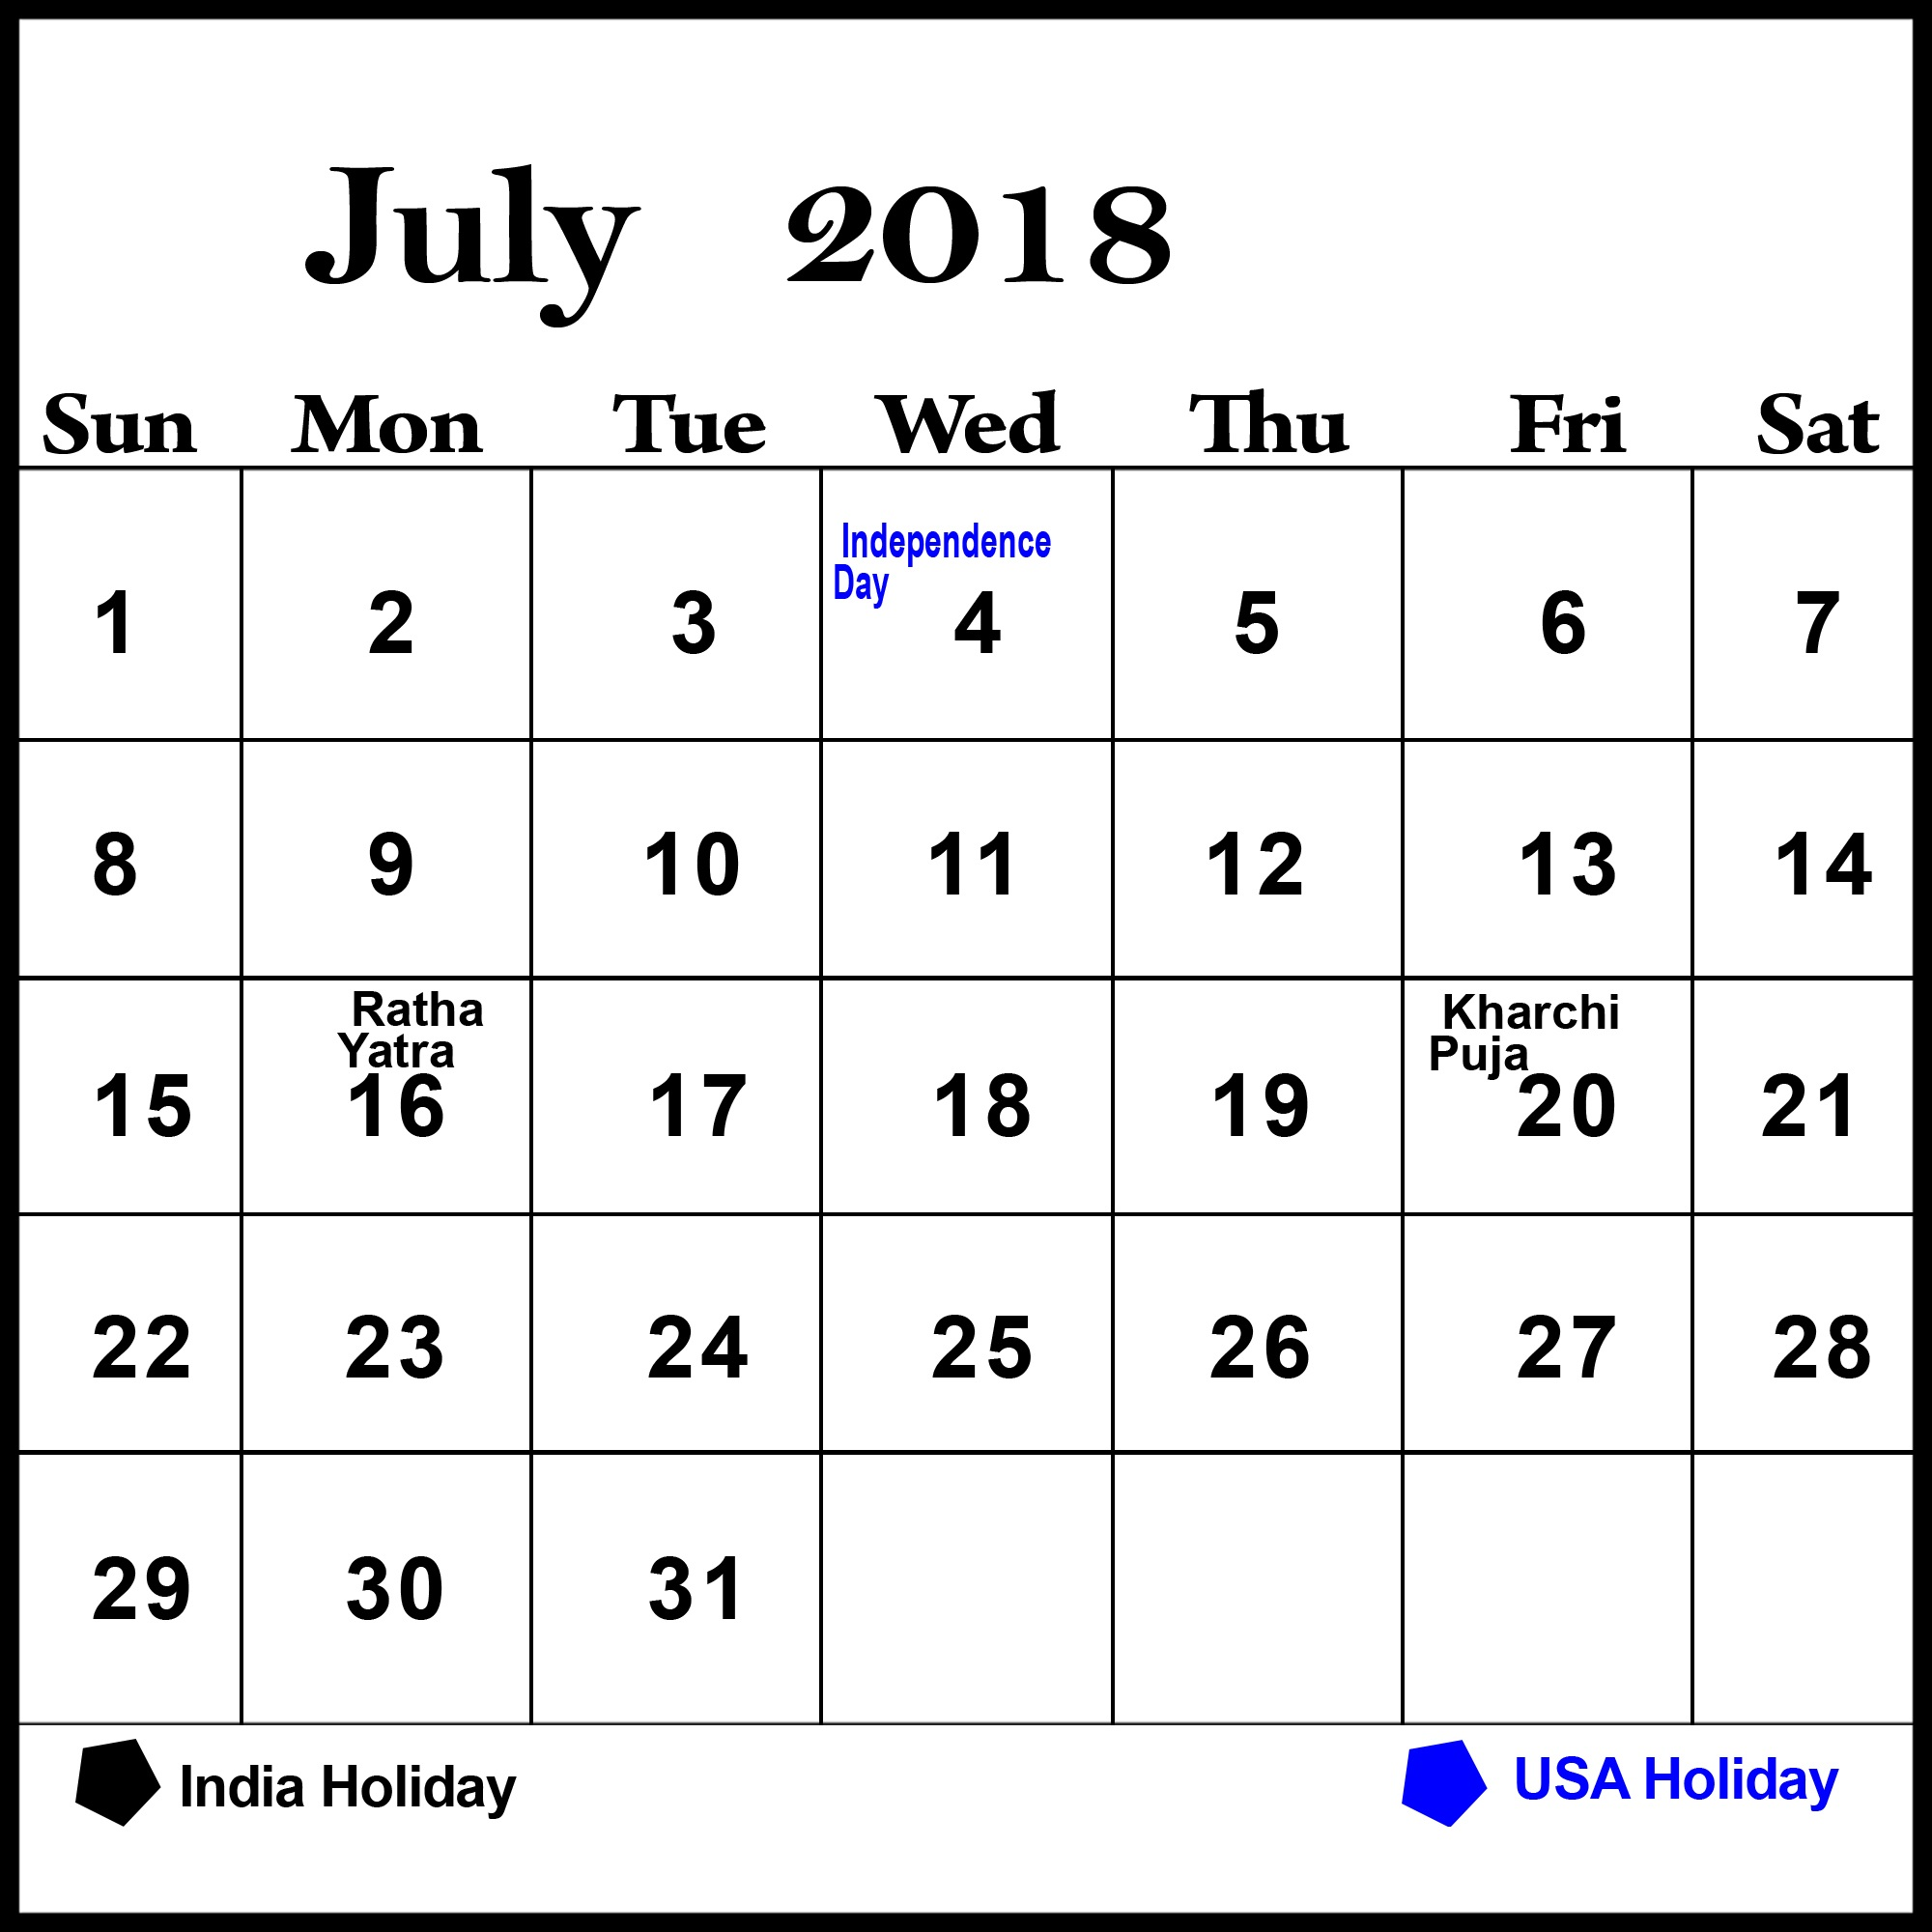 Monthly Calendar of July 2018